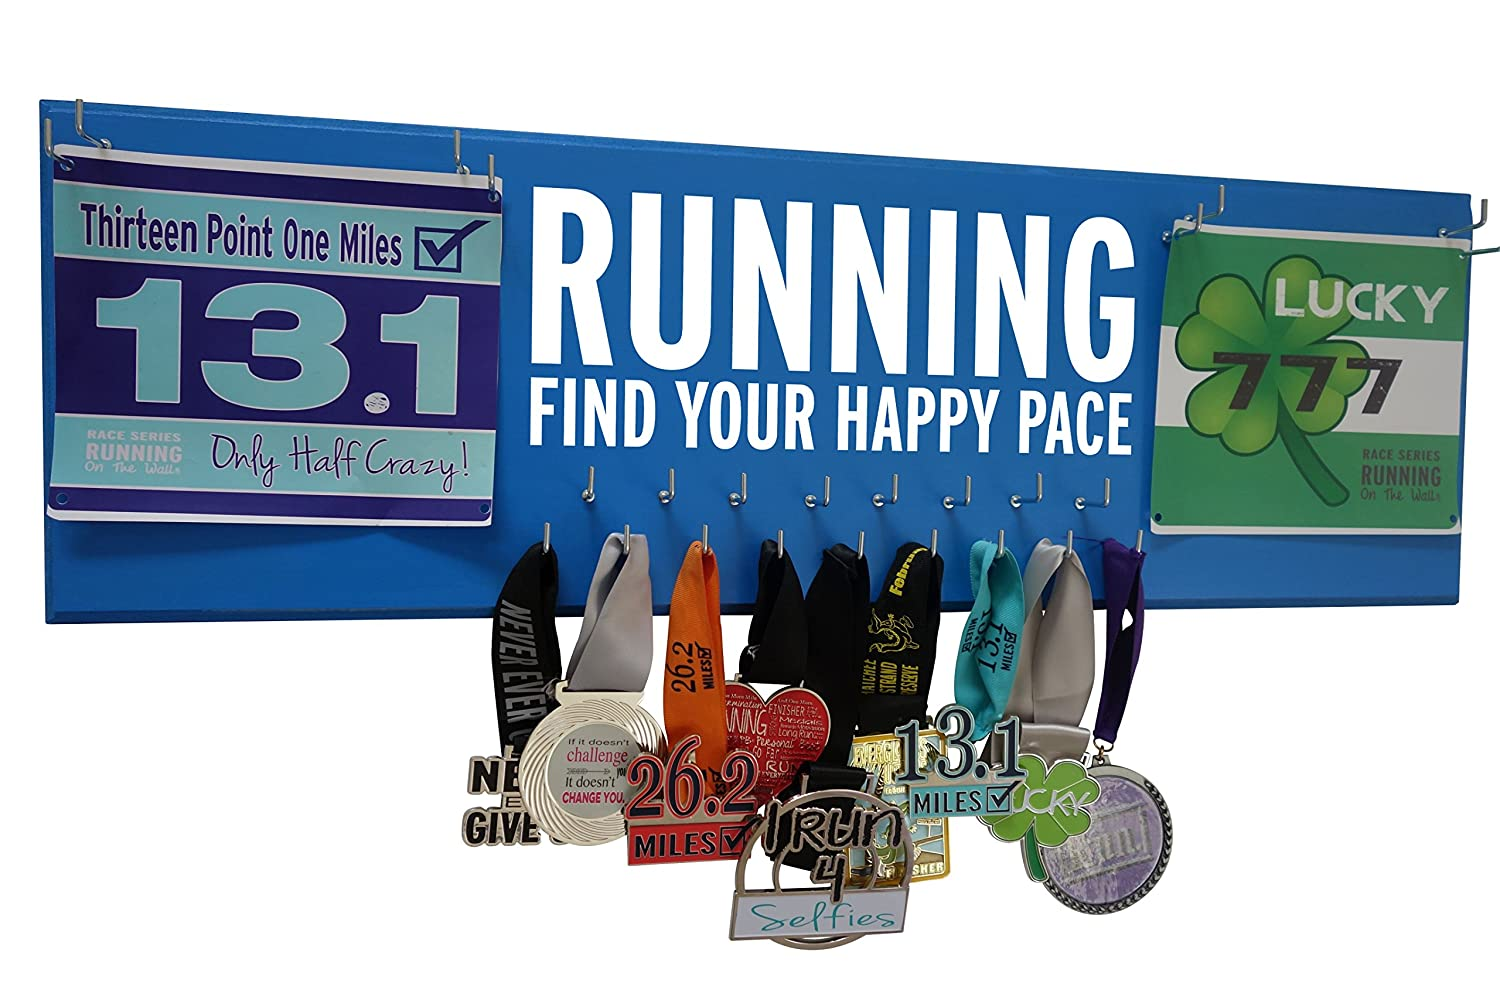 Amazon.com : RunningontheWall Medal Hanger Medal Display Rack Race Bibs Running - FIND Your Happy PACE Double Running Bib Design : Sports & Outdoors